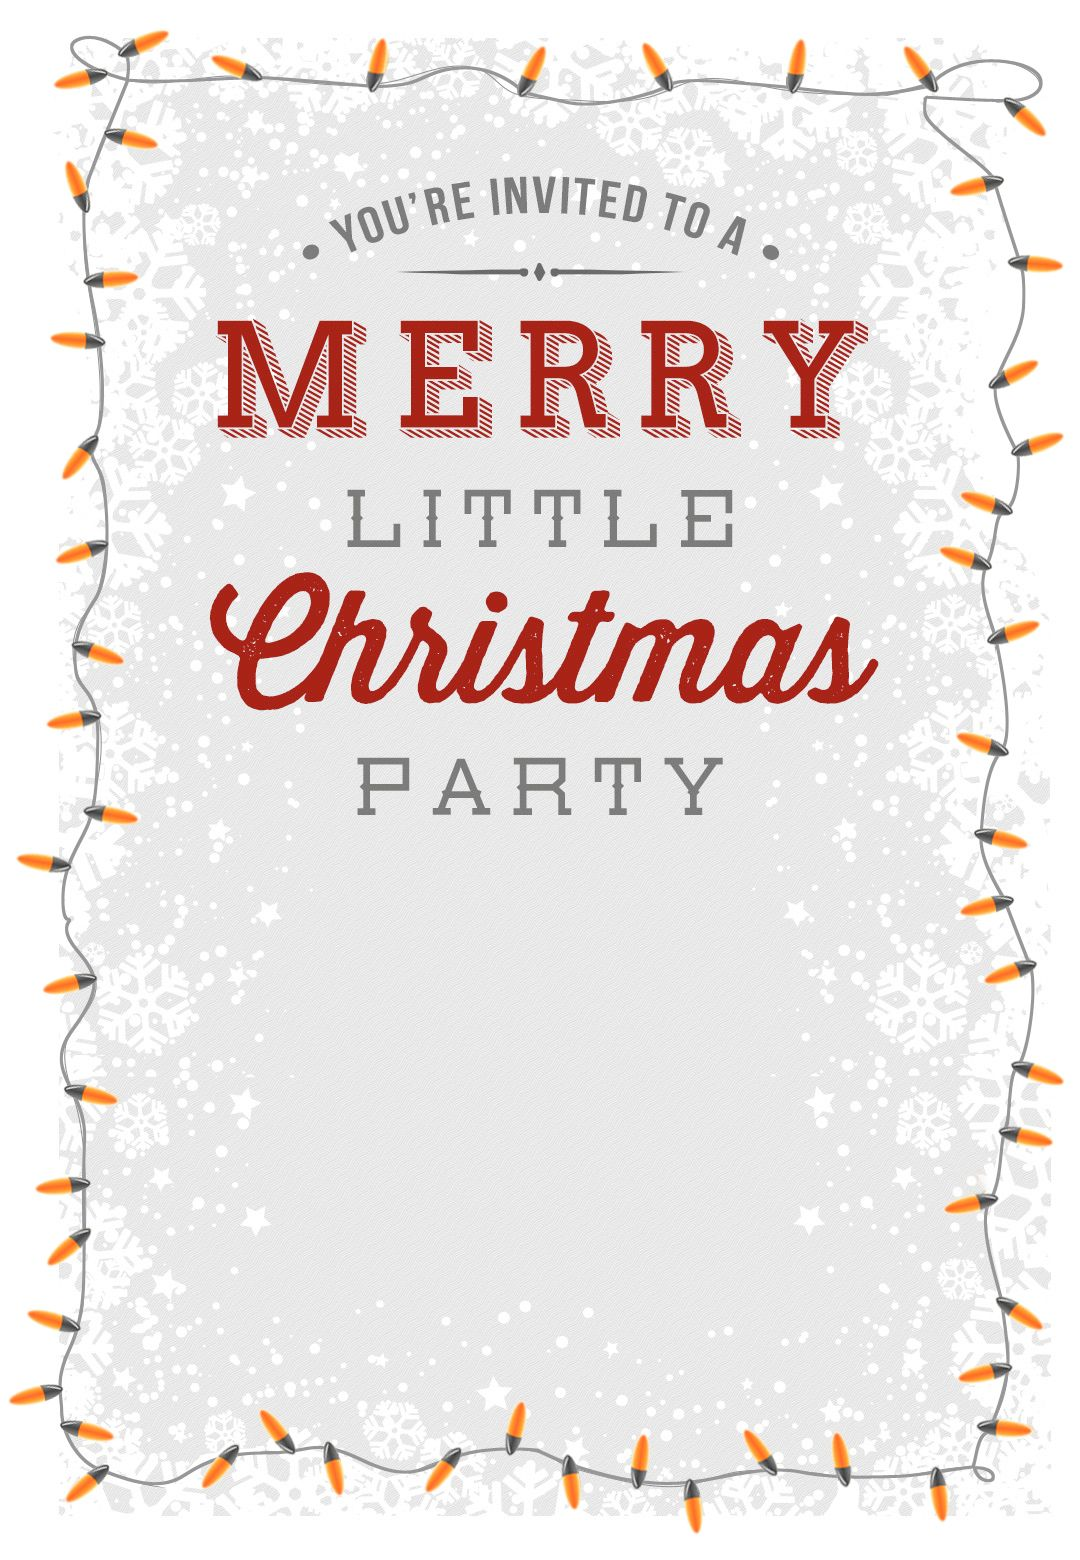 A Merry Little Party Free Printable Christmas Invitation Template